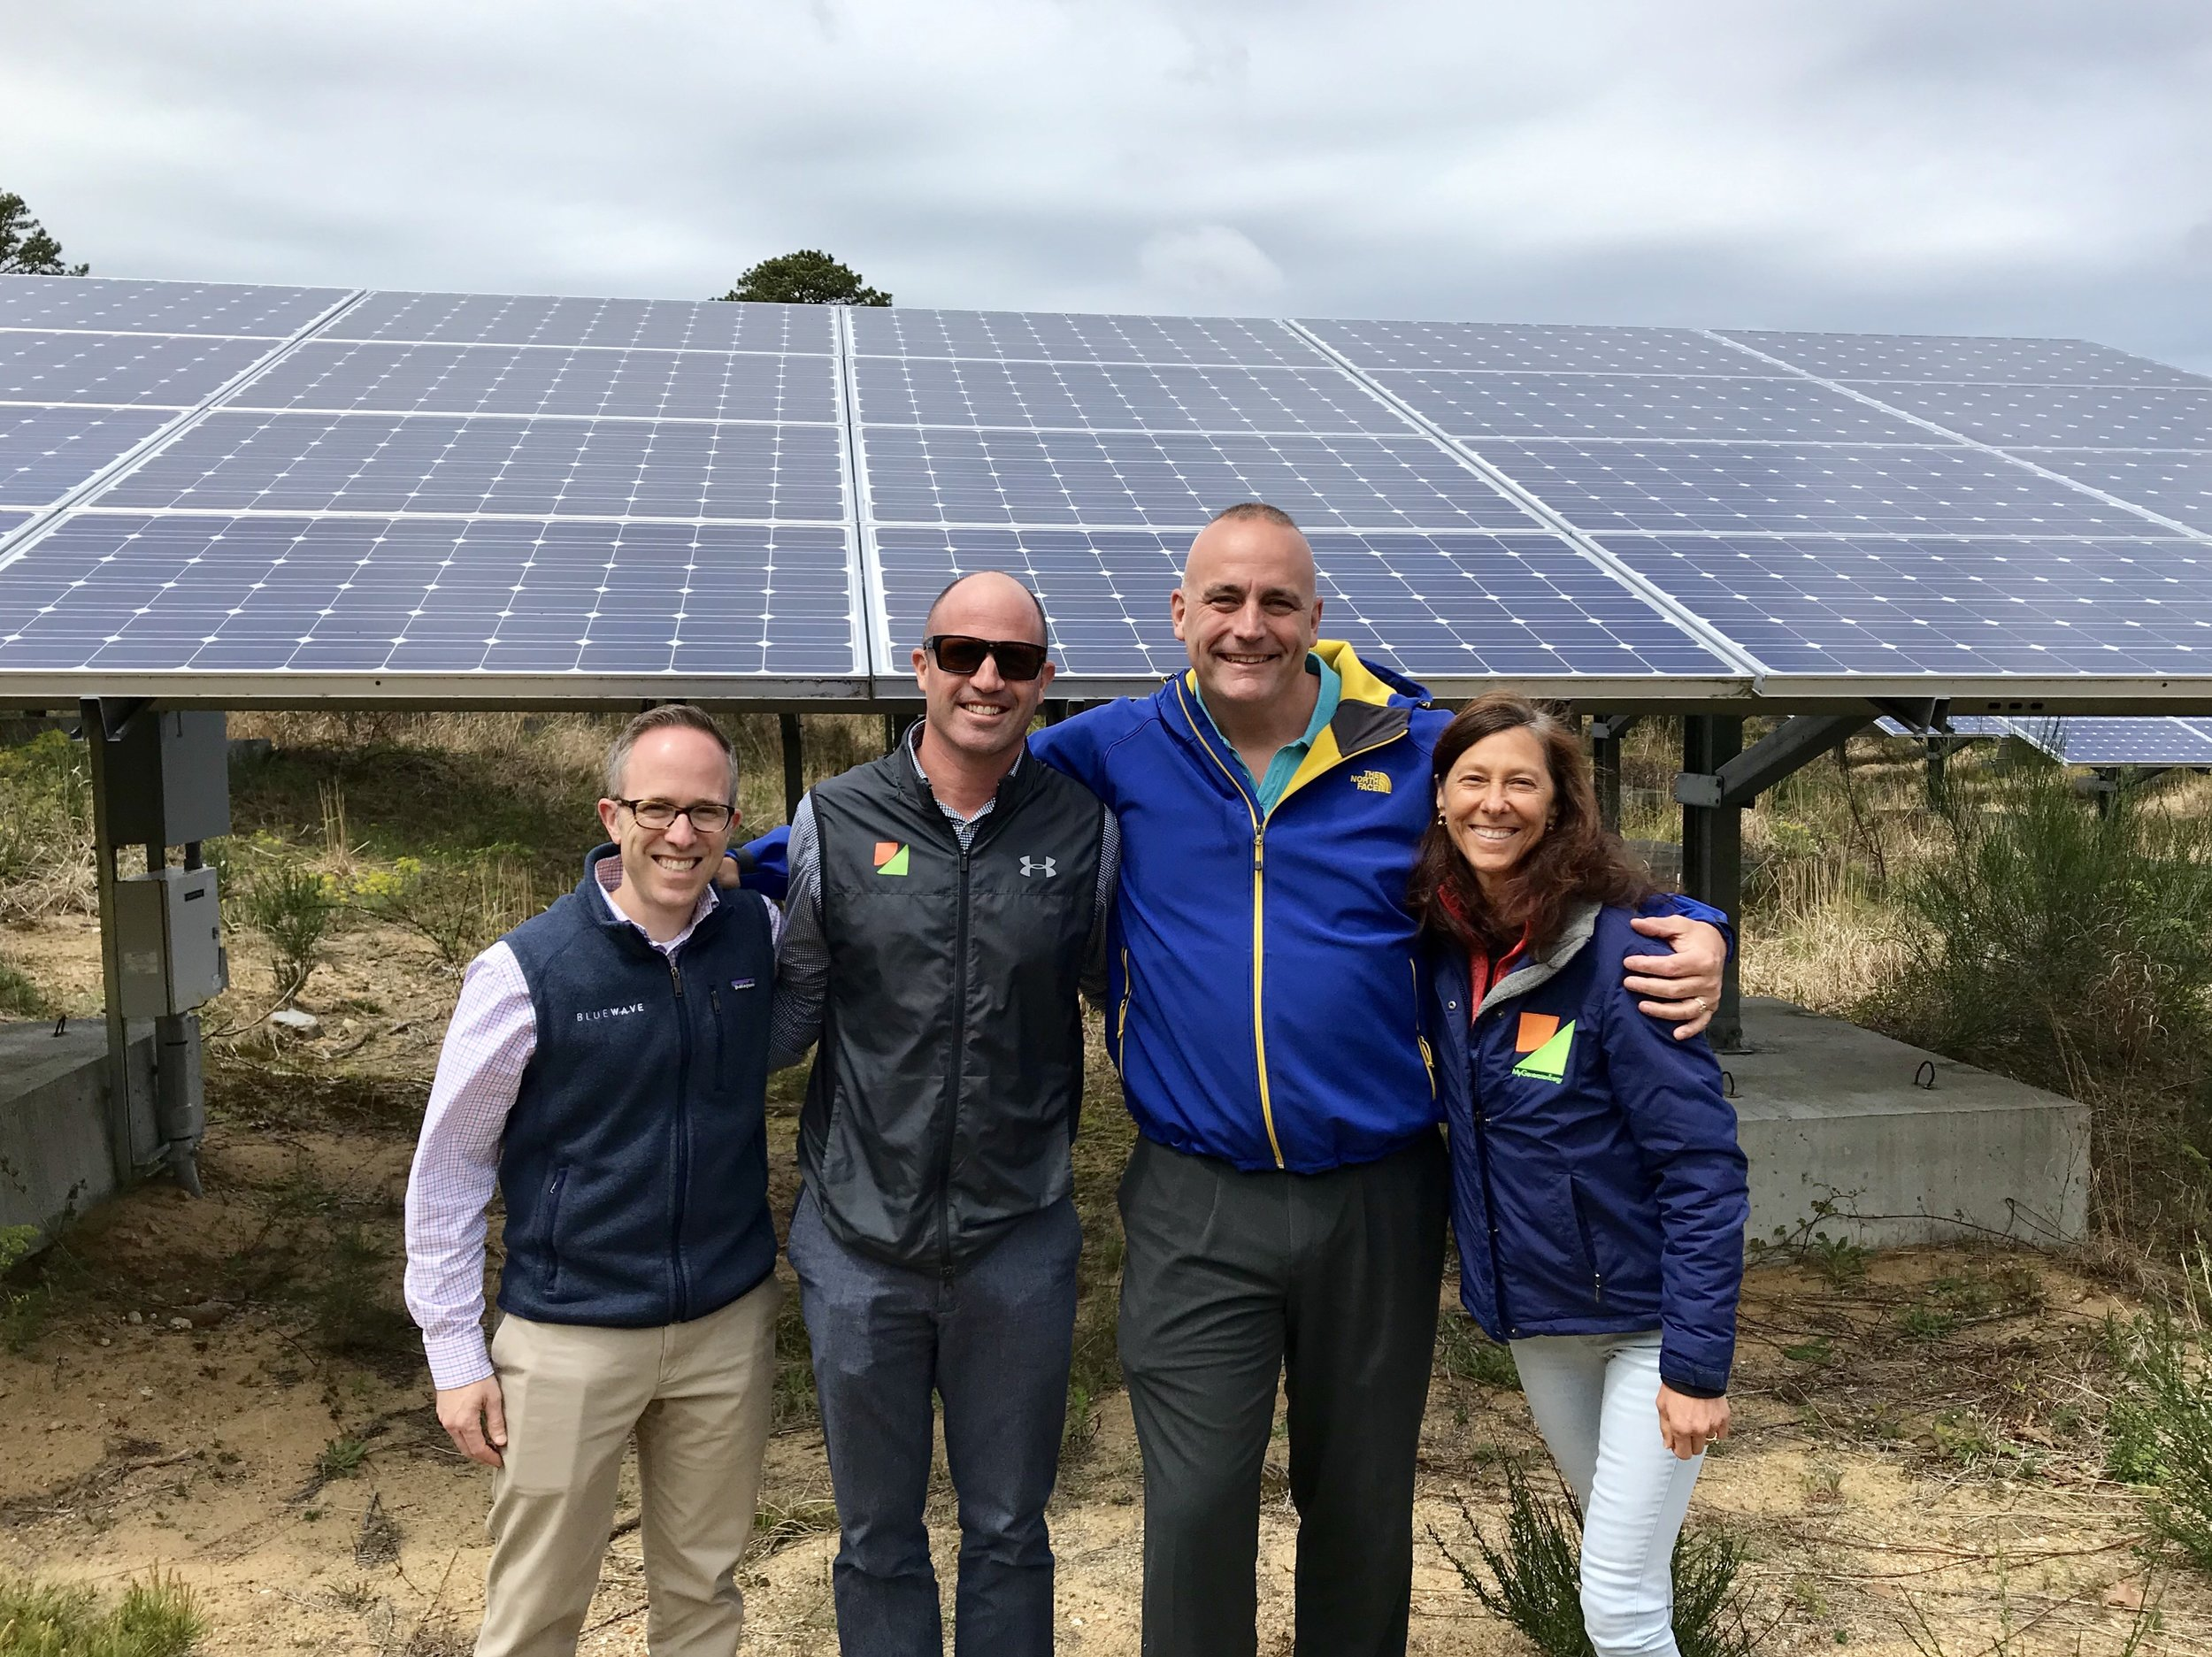 Mark Sylvia, Representative Whelan, and members from My Generation Energy at the Brewster Community Solar Garden.